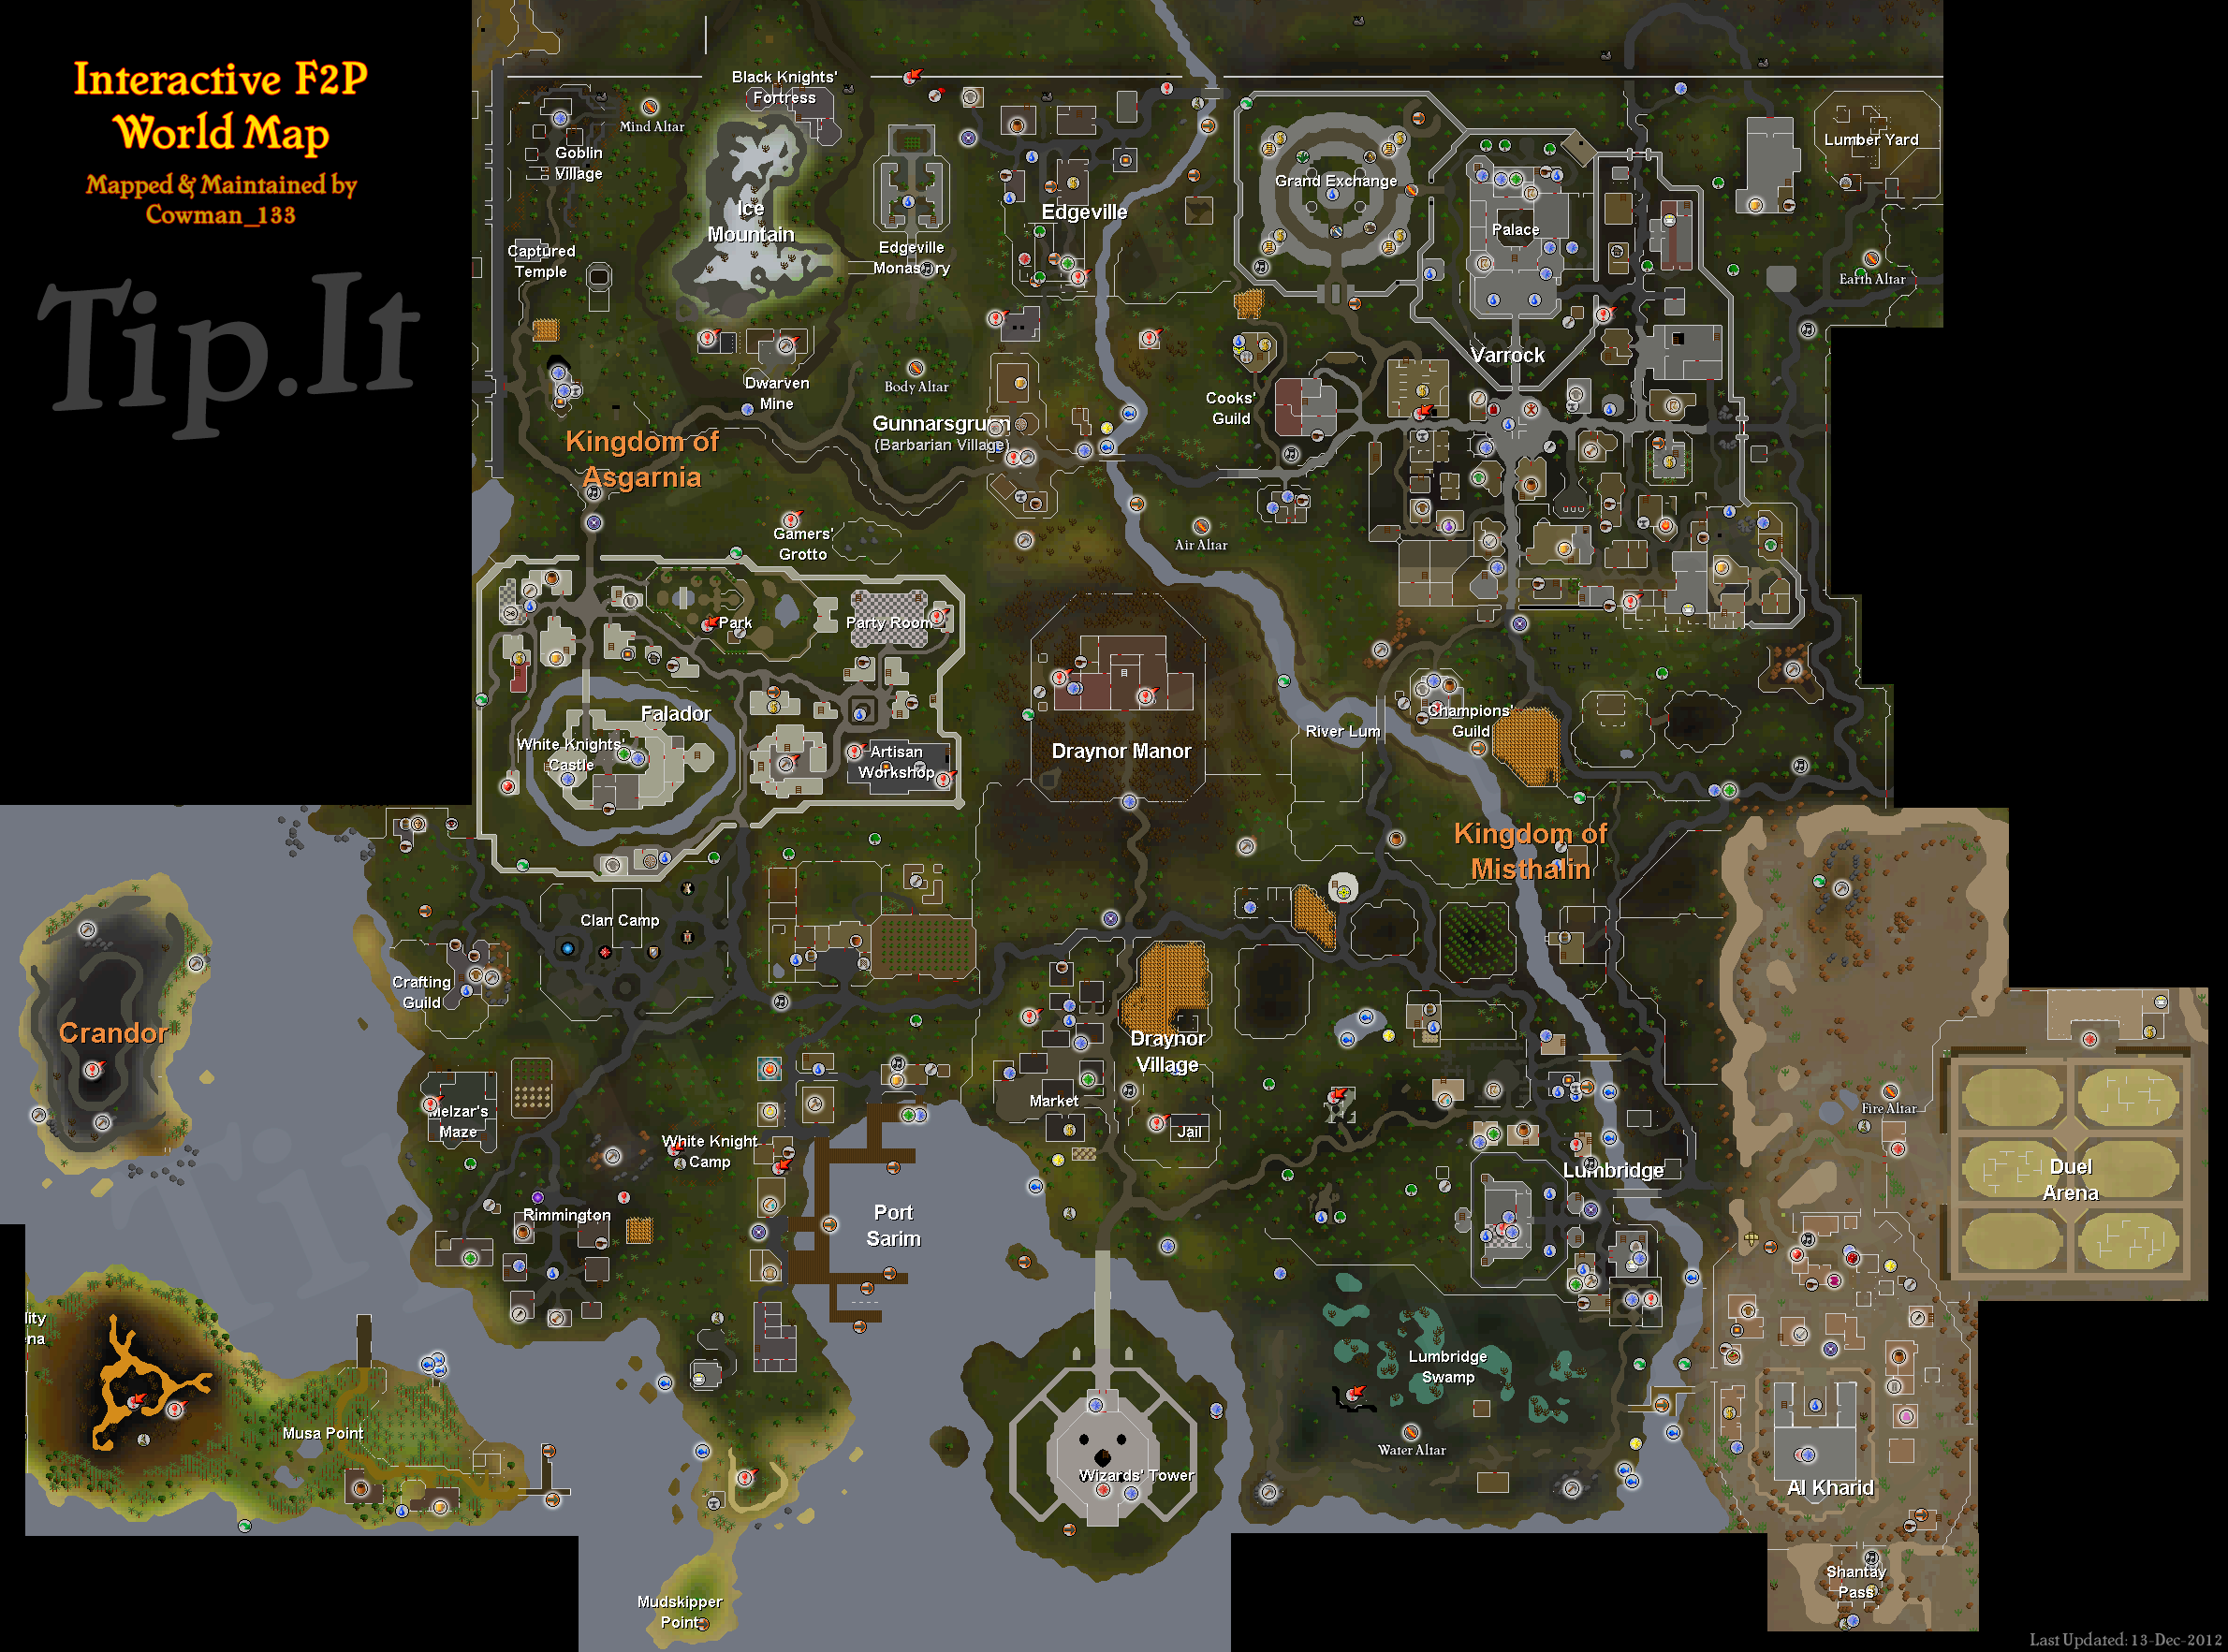 Tip.It RuneScape Help :: F2P World Map :: The Original ...